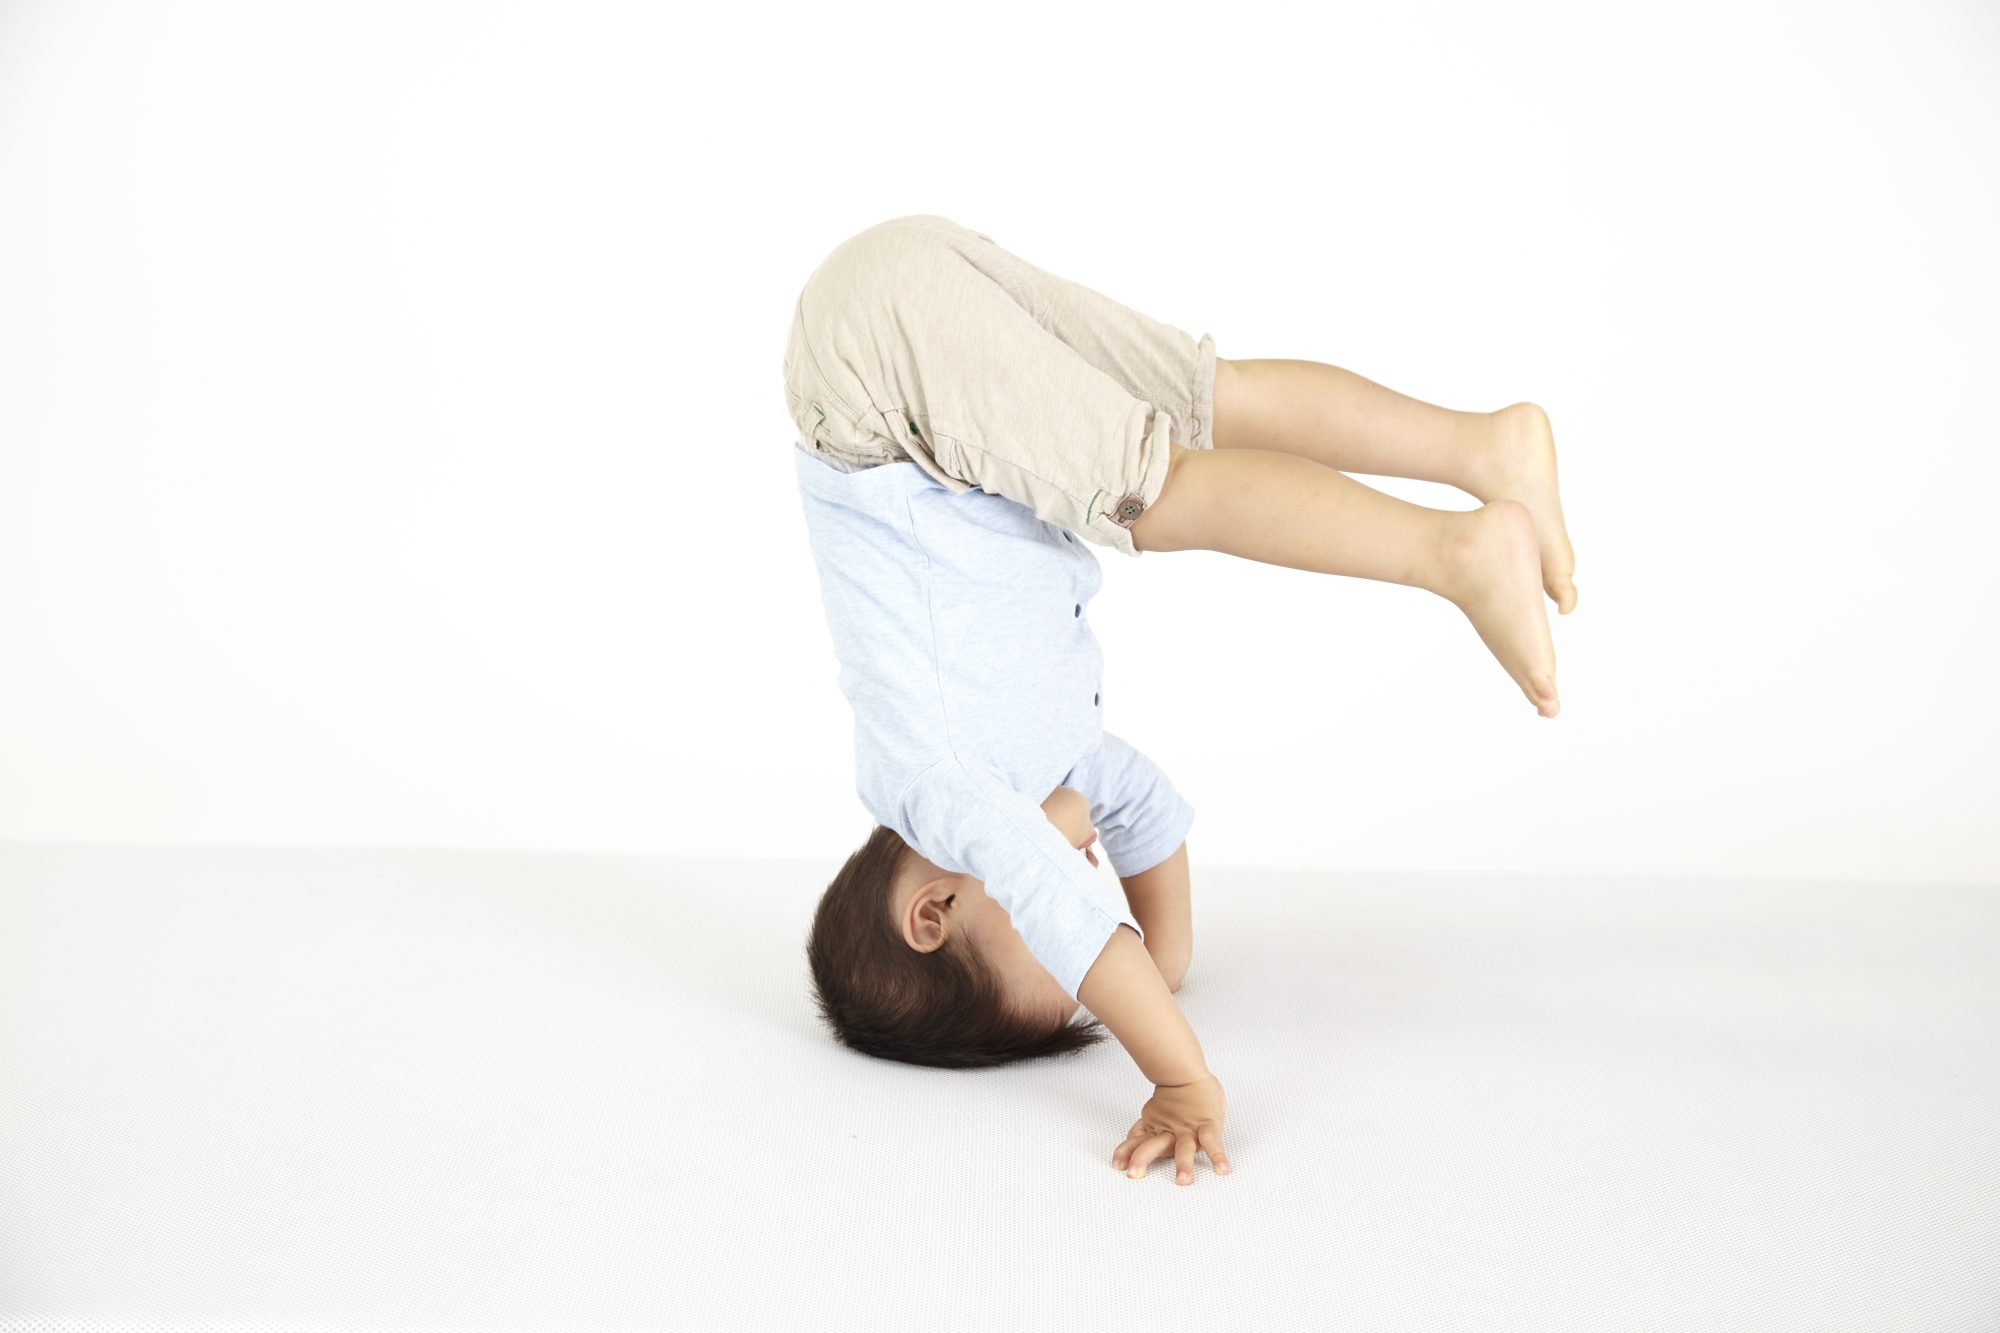 Toddler Doing Headstand